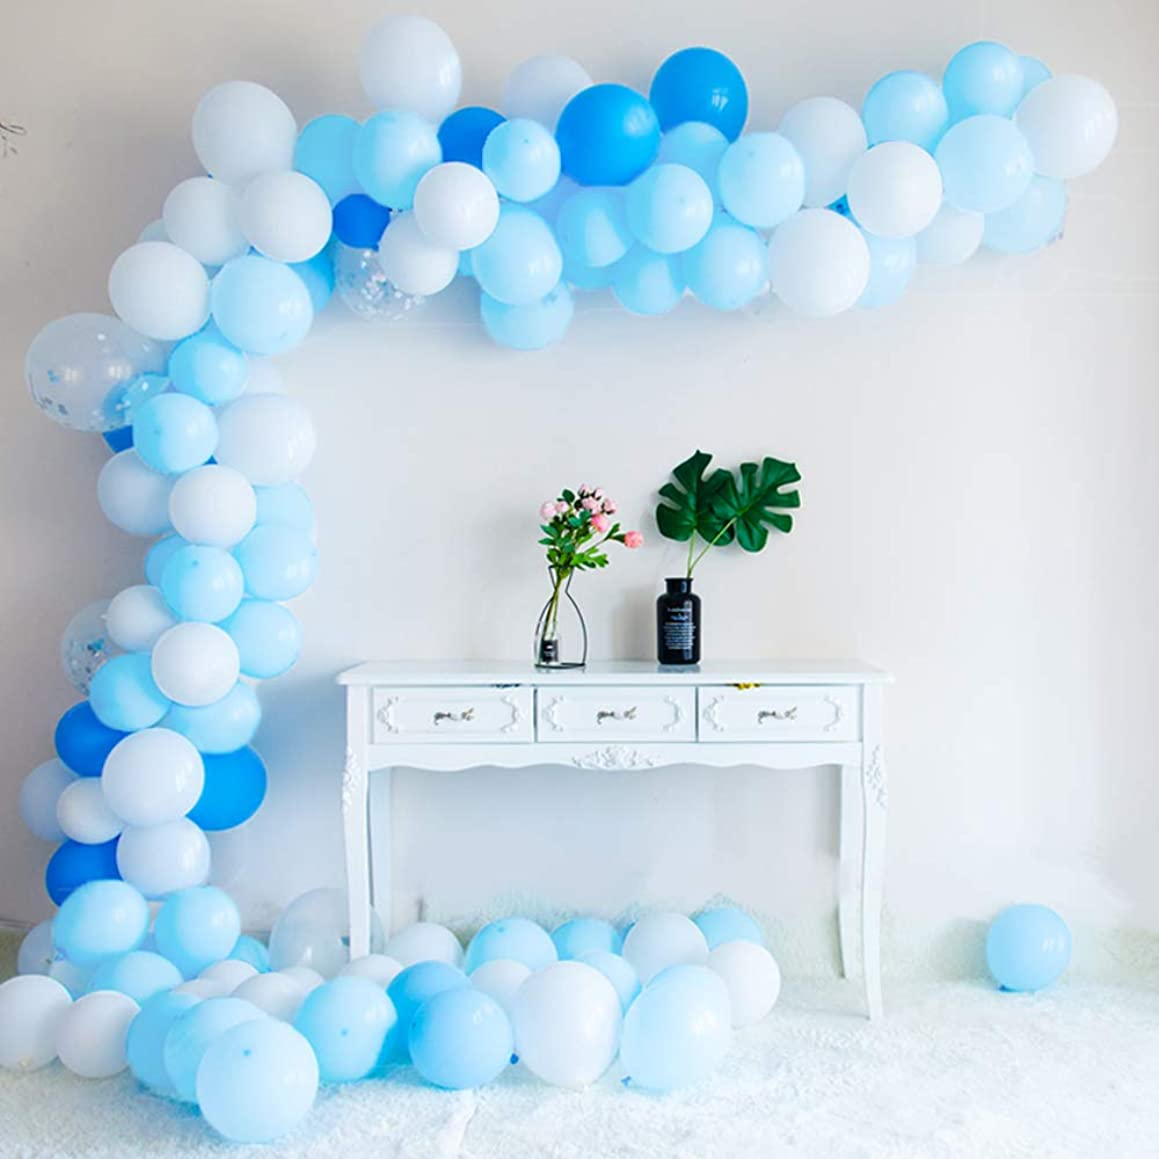 Blue Party Balloons 135 Pcs Macaron Blue & Dark Blue & Blue Confetti balloons and Decorating Strip + inflator + Masking Tape Party Decoration Birthday Wedding Baby Shower